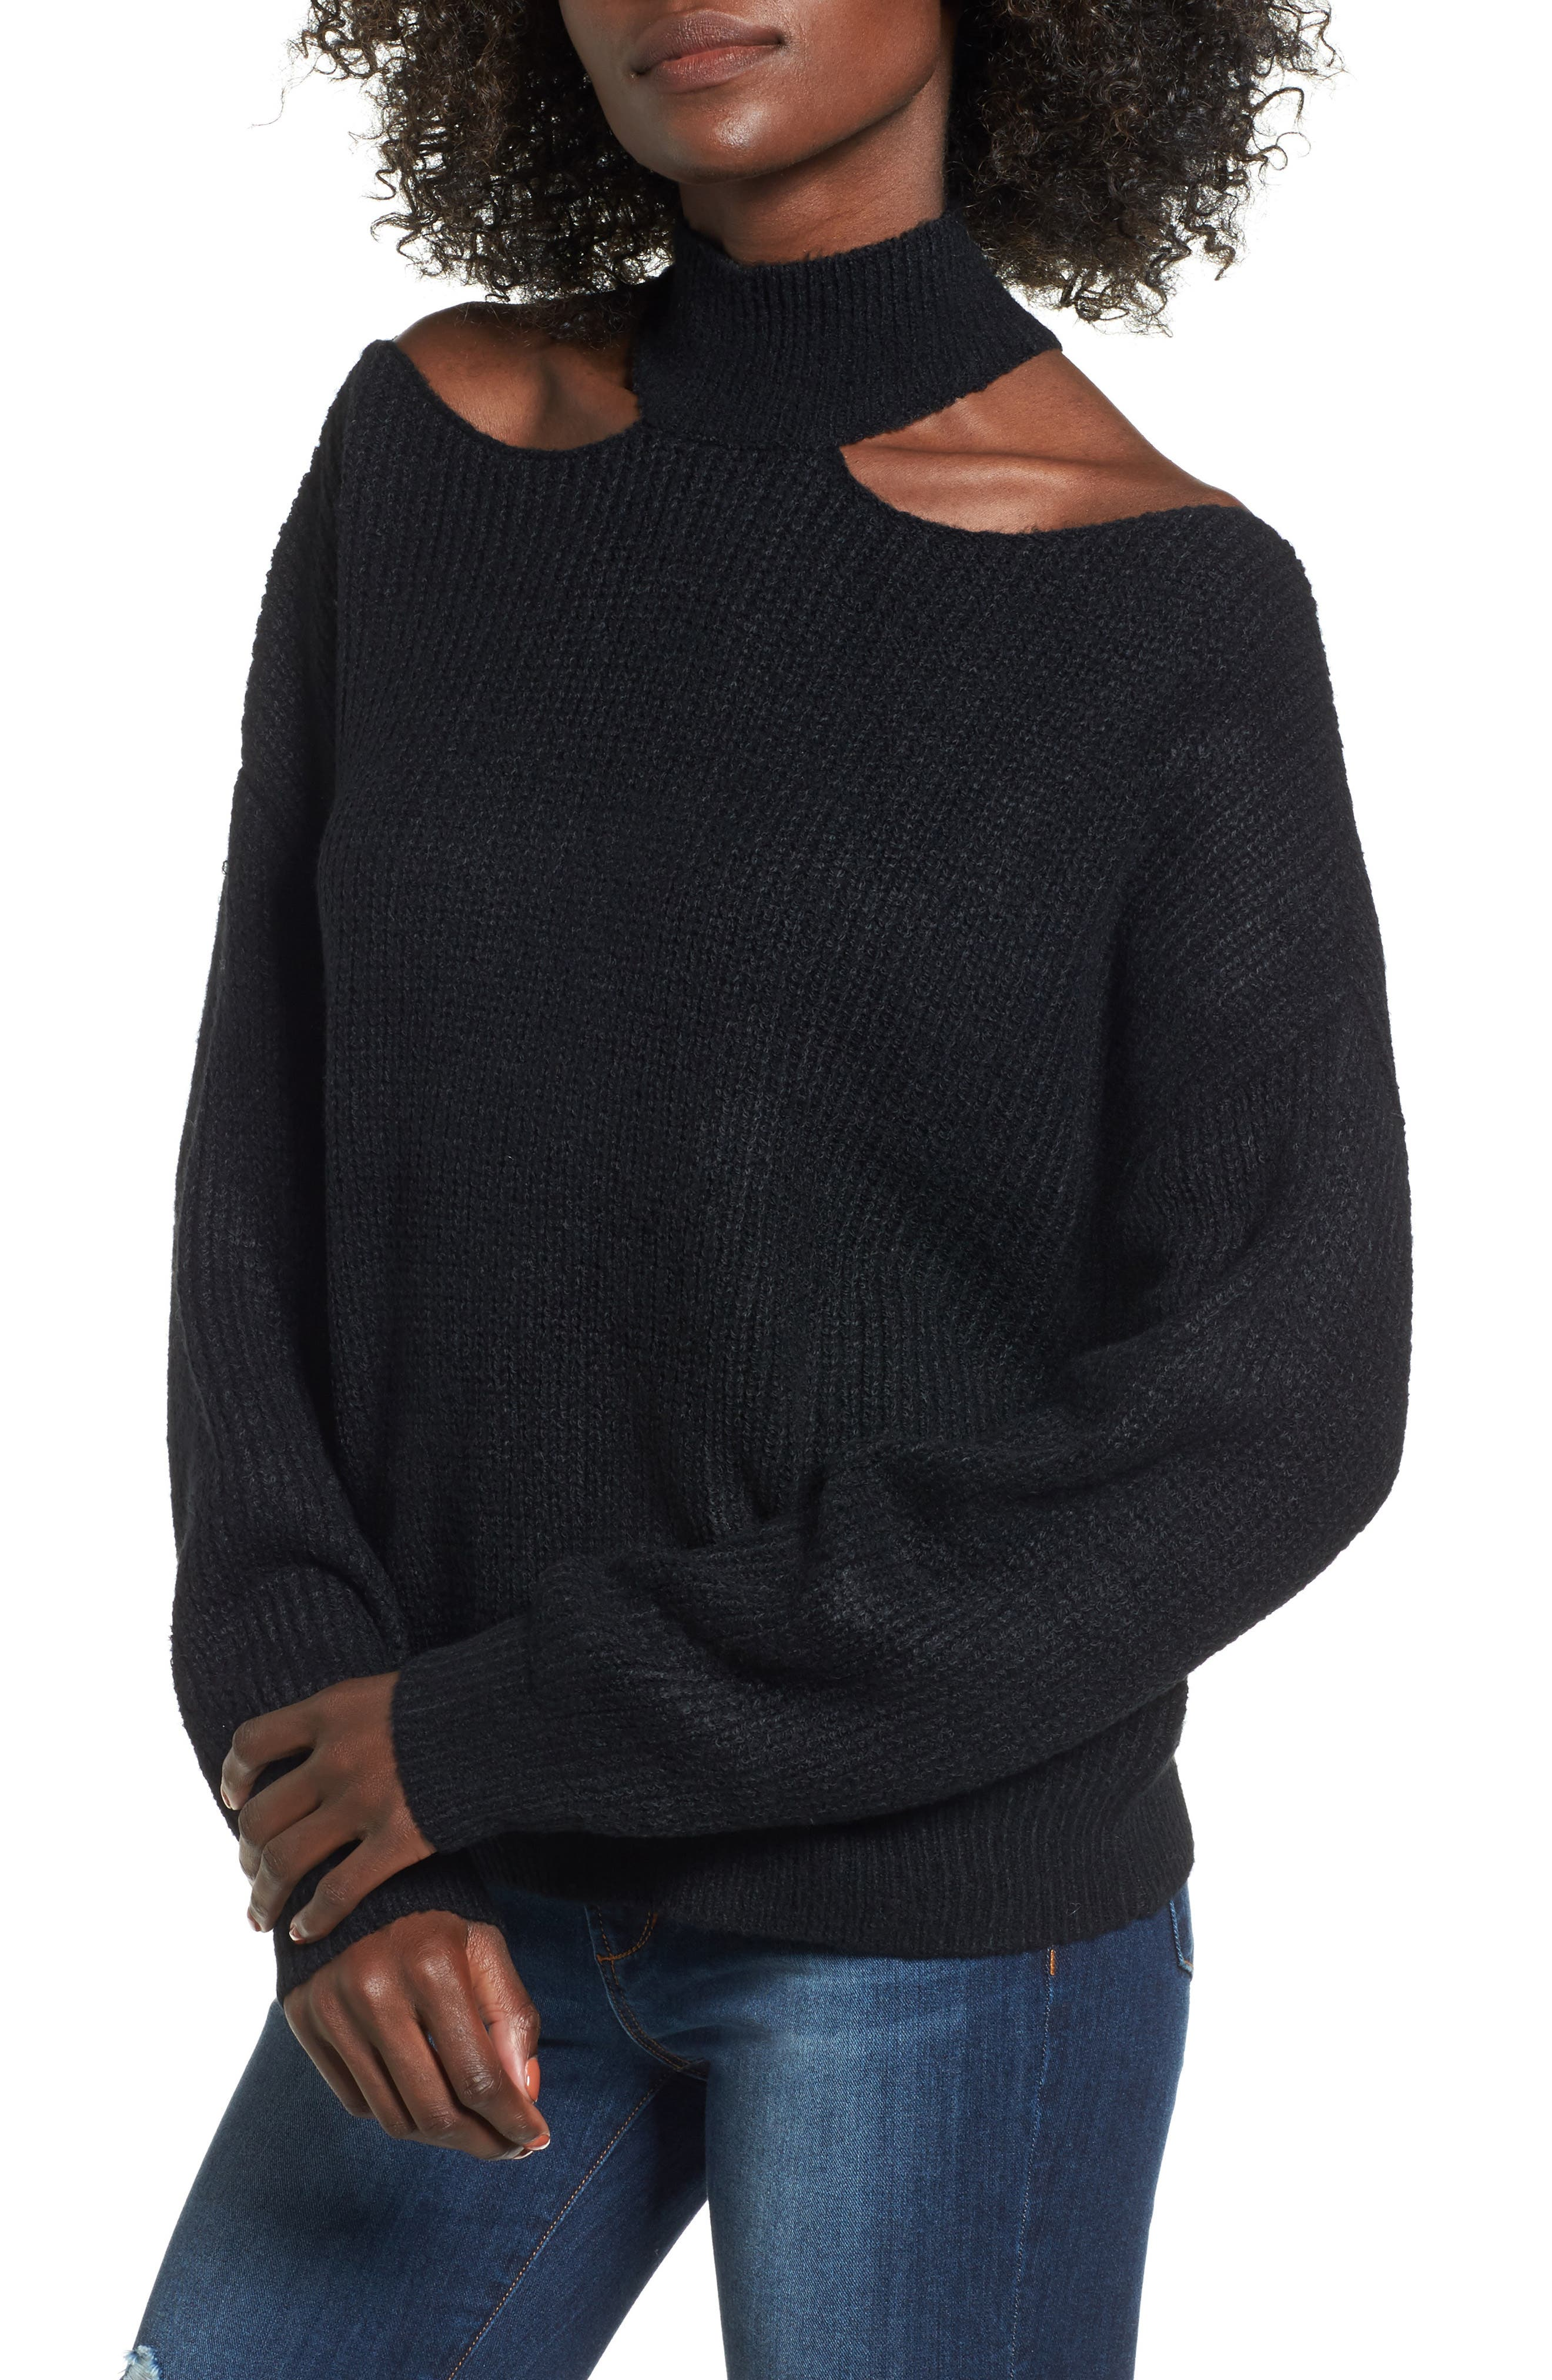 Woven Heart Cutout Turtleneck Sweater